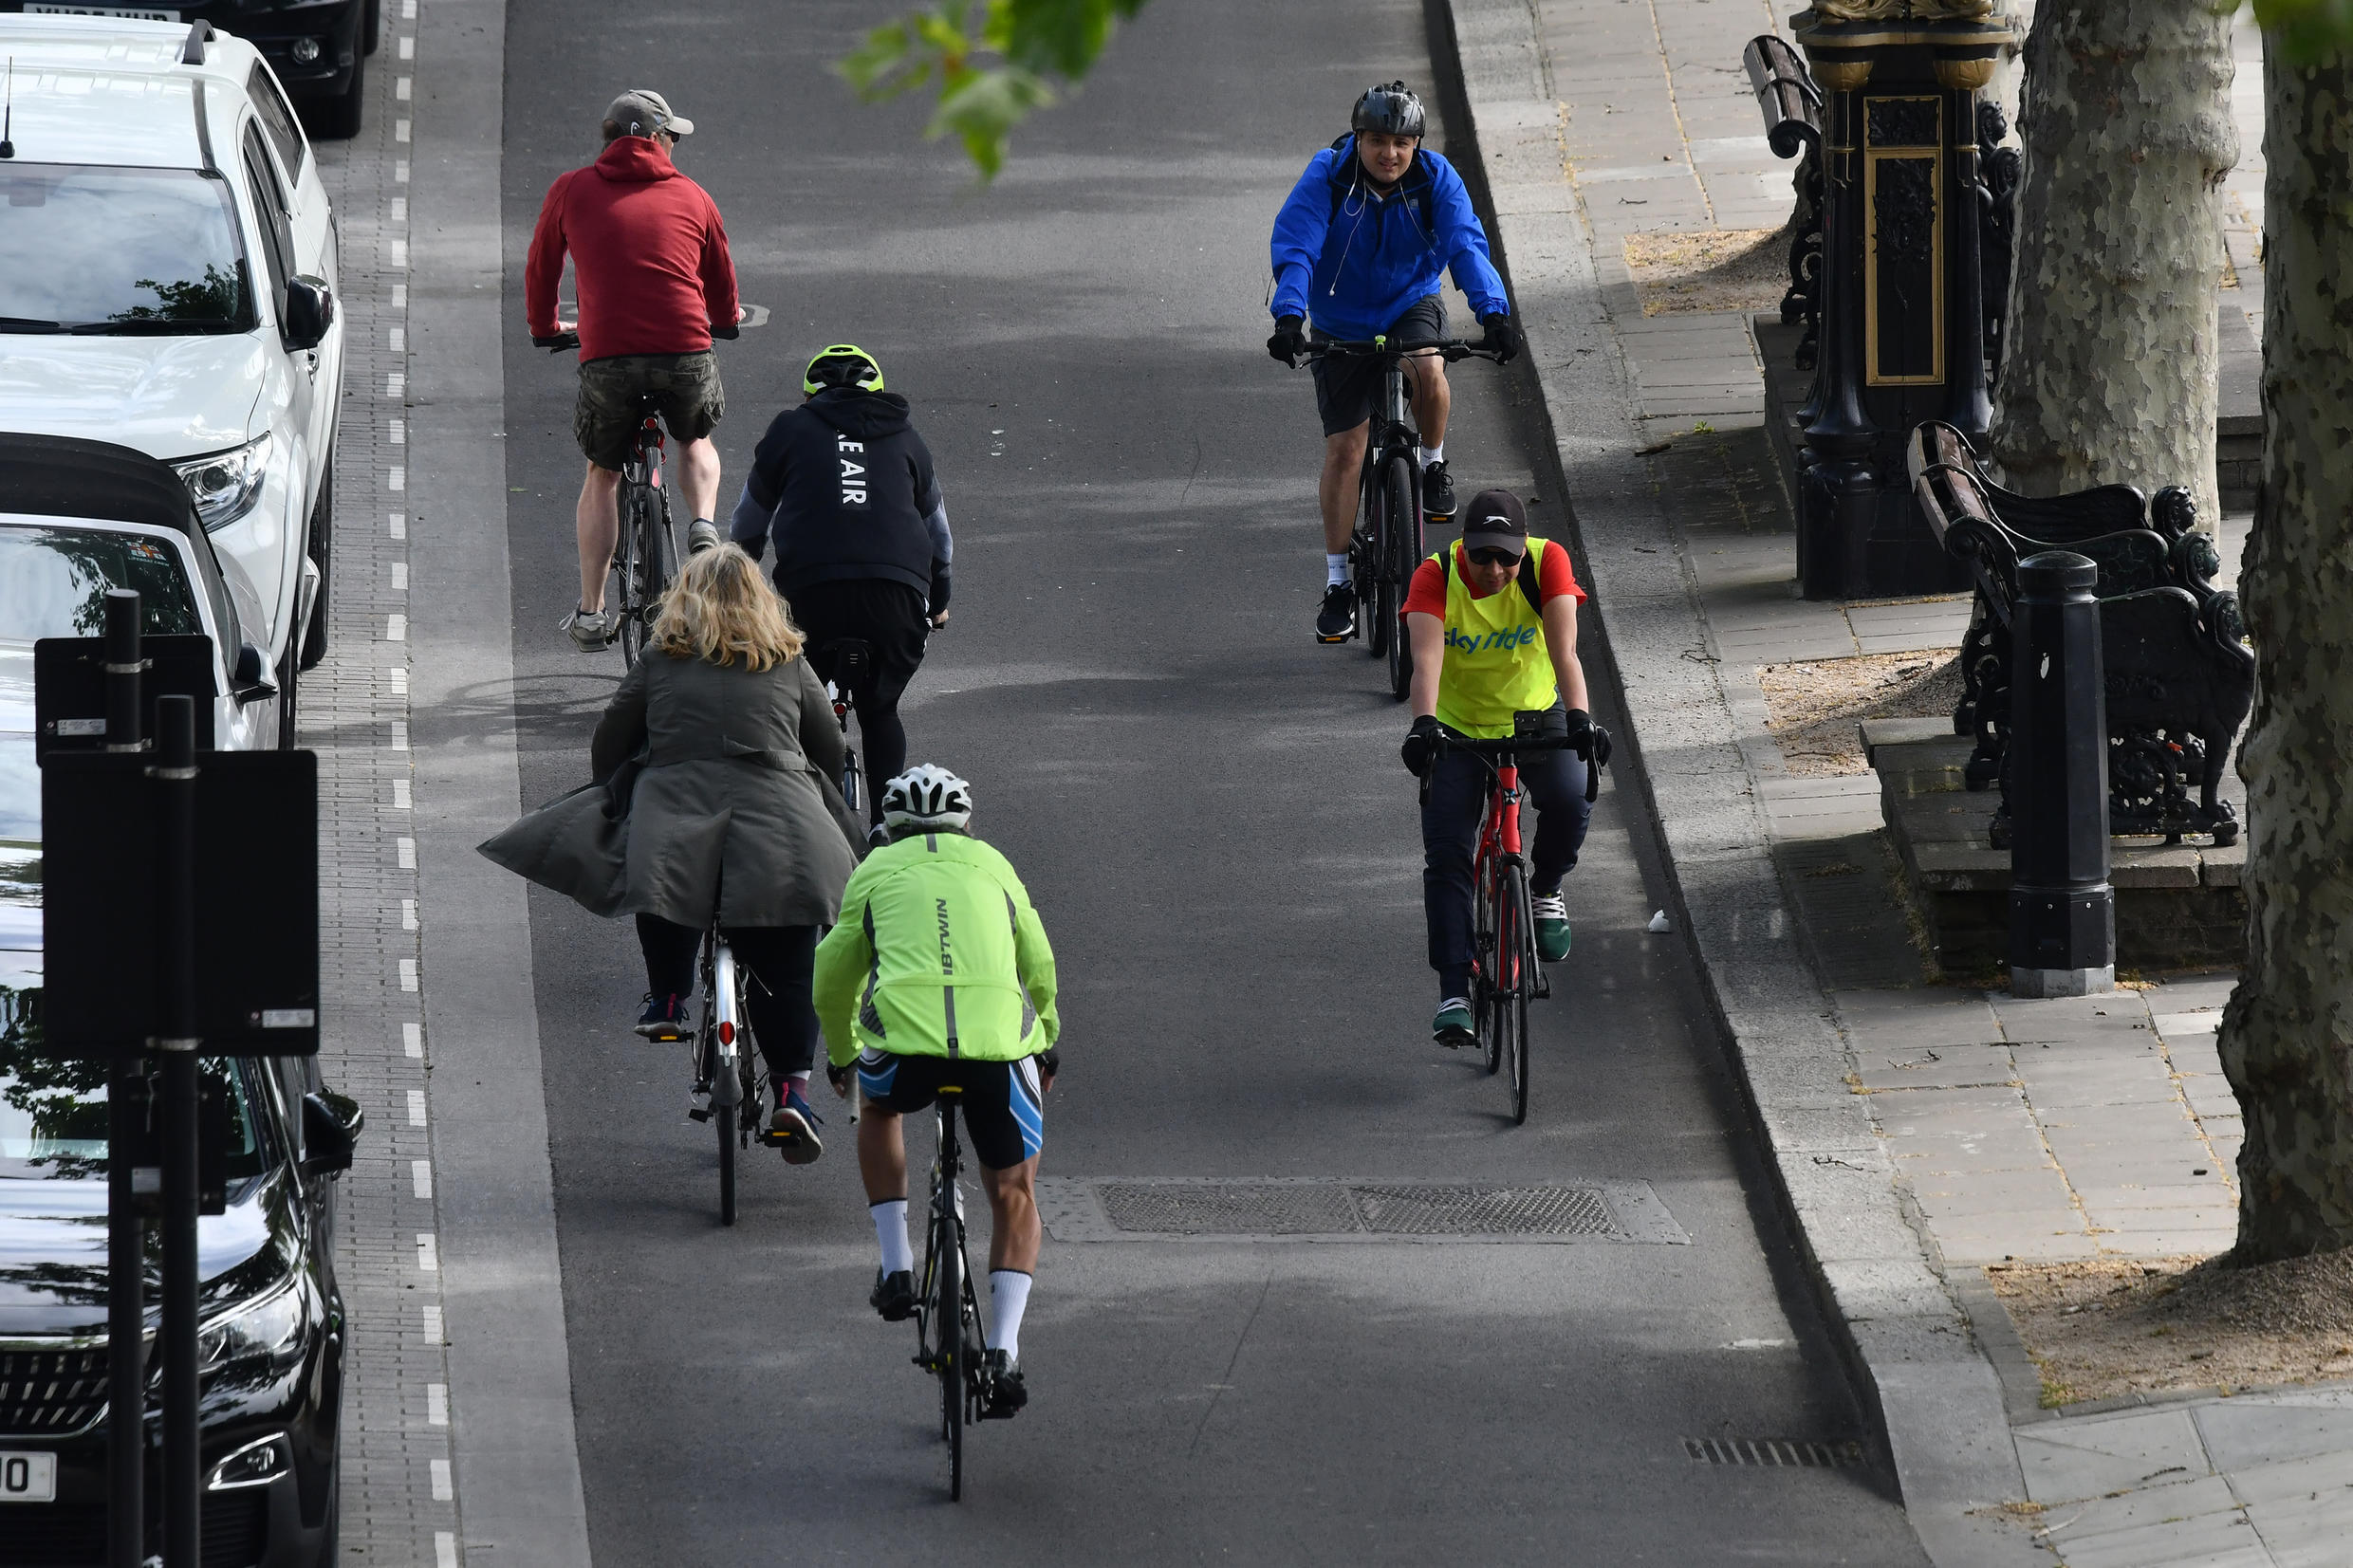 Cyclists travel in the cycle lane along the Embankment in central London on May 16, 2020, following an easing of lockdown rules in England during the novel coronavirus pandemic.